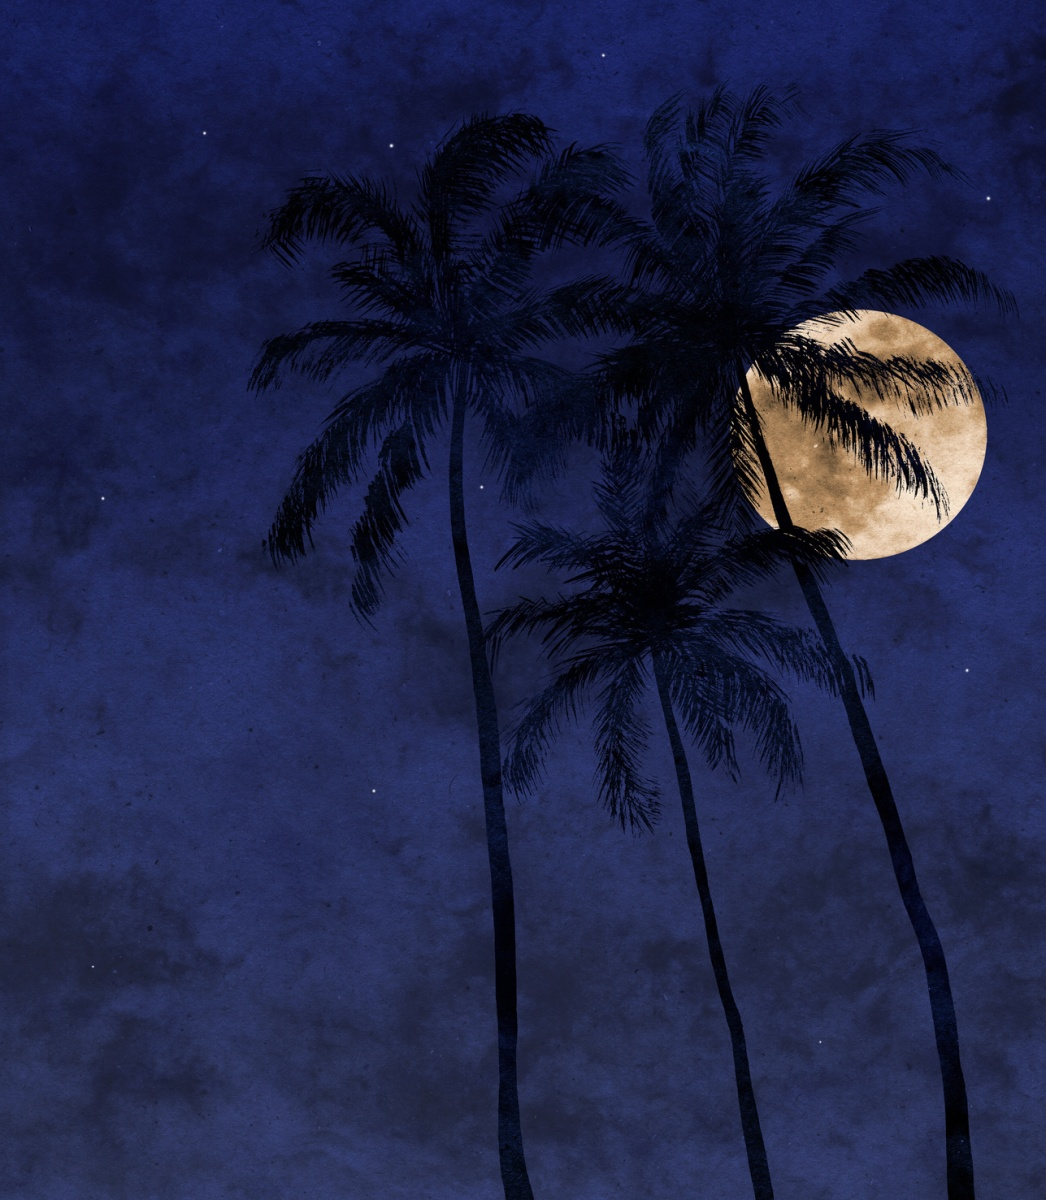 Tropical Nights - II | a poem by Uthman Bello